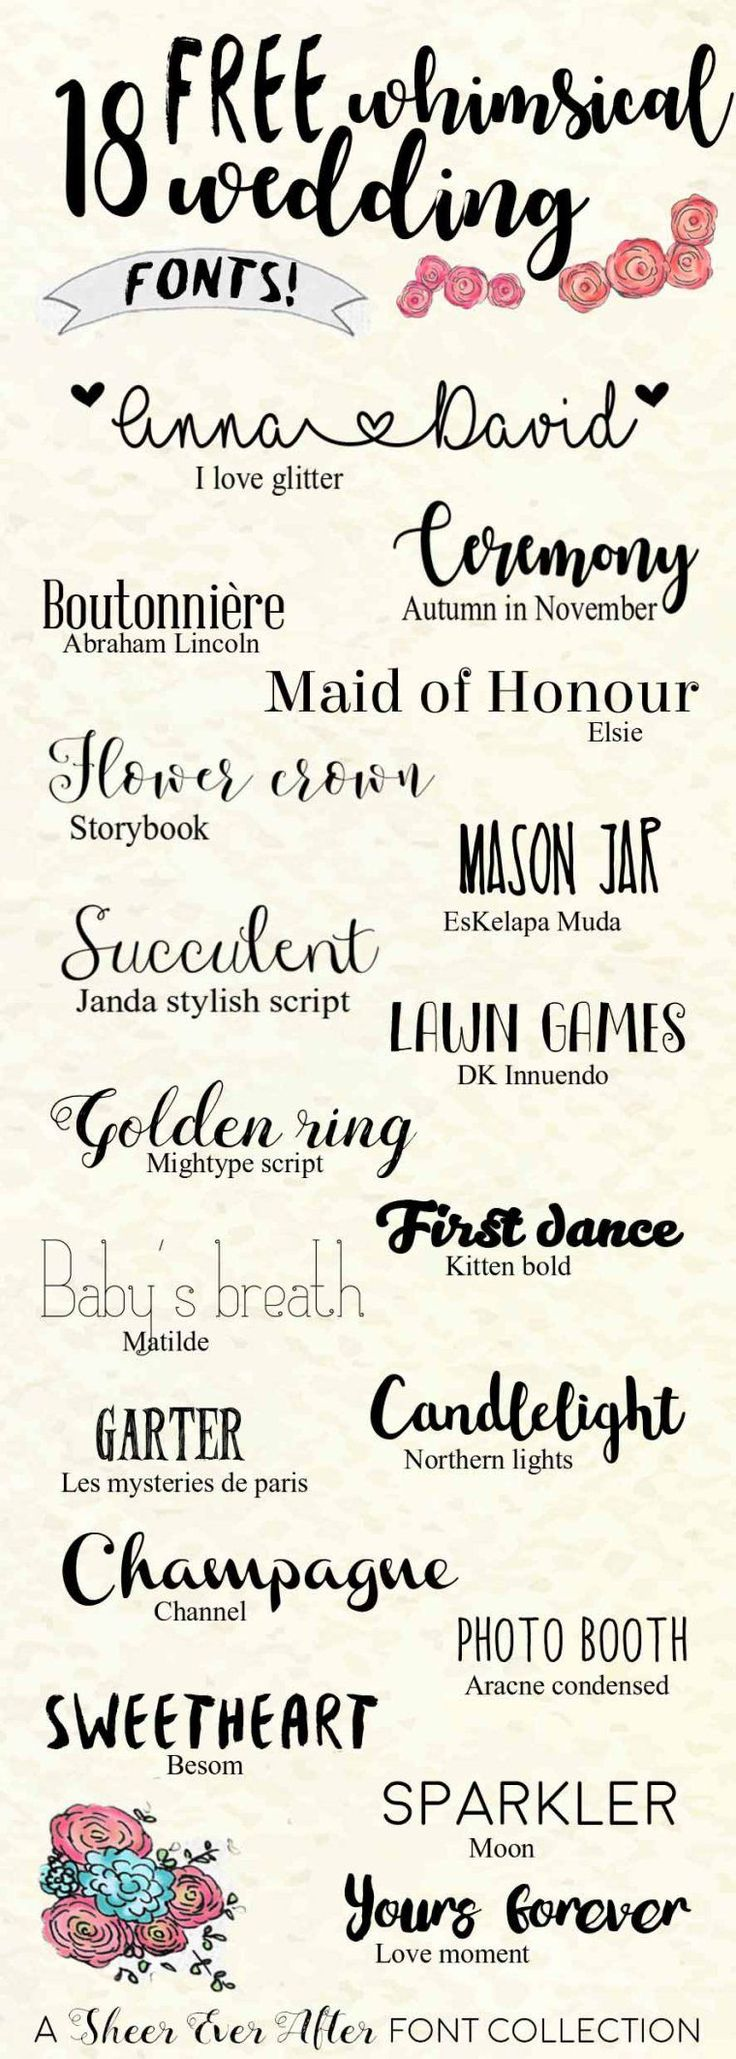 whimsical wedding fonts - Fonts For Wedding Invitations